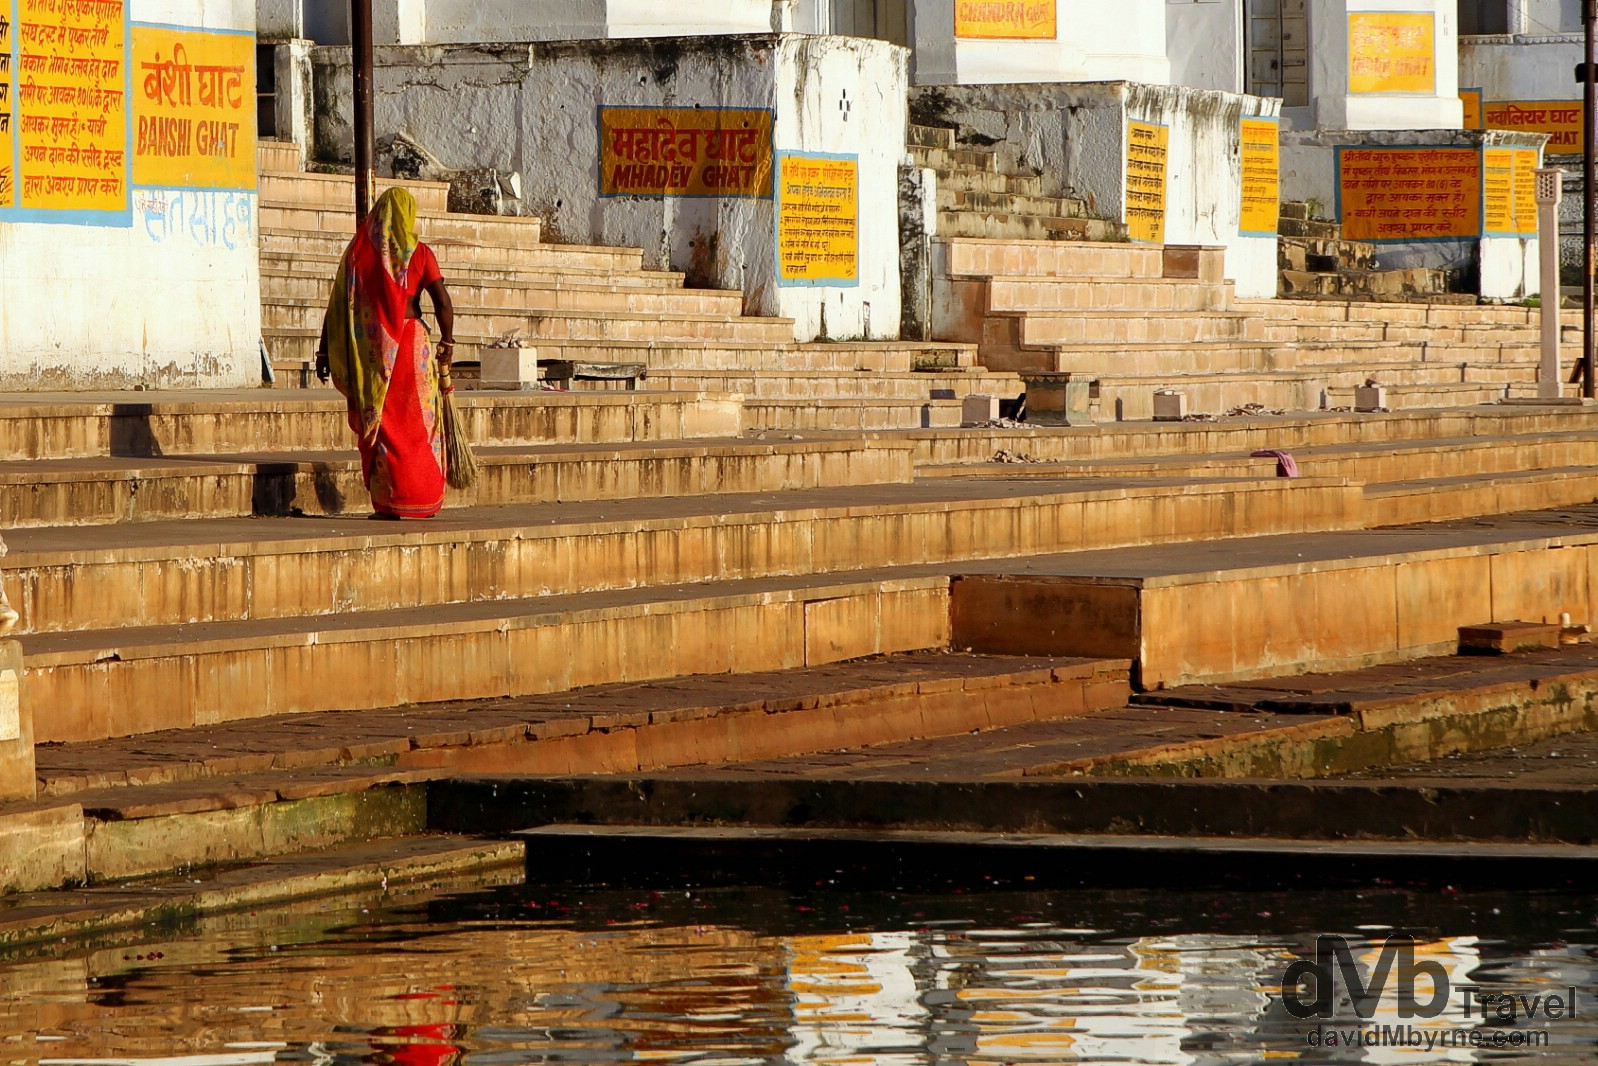 Down on the ghats in Pushkar, Rajasthan, India. October 2nd 2012.